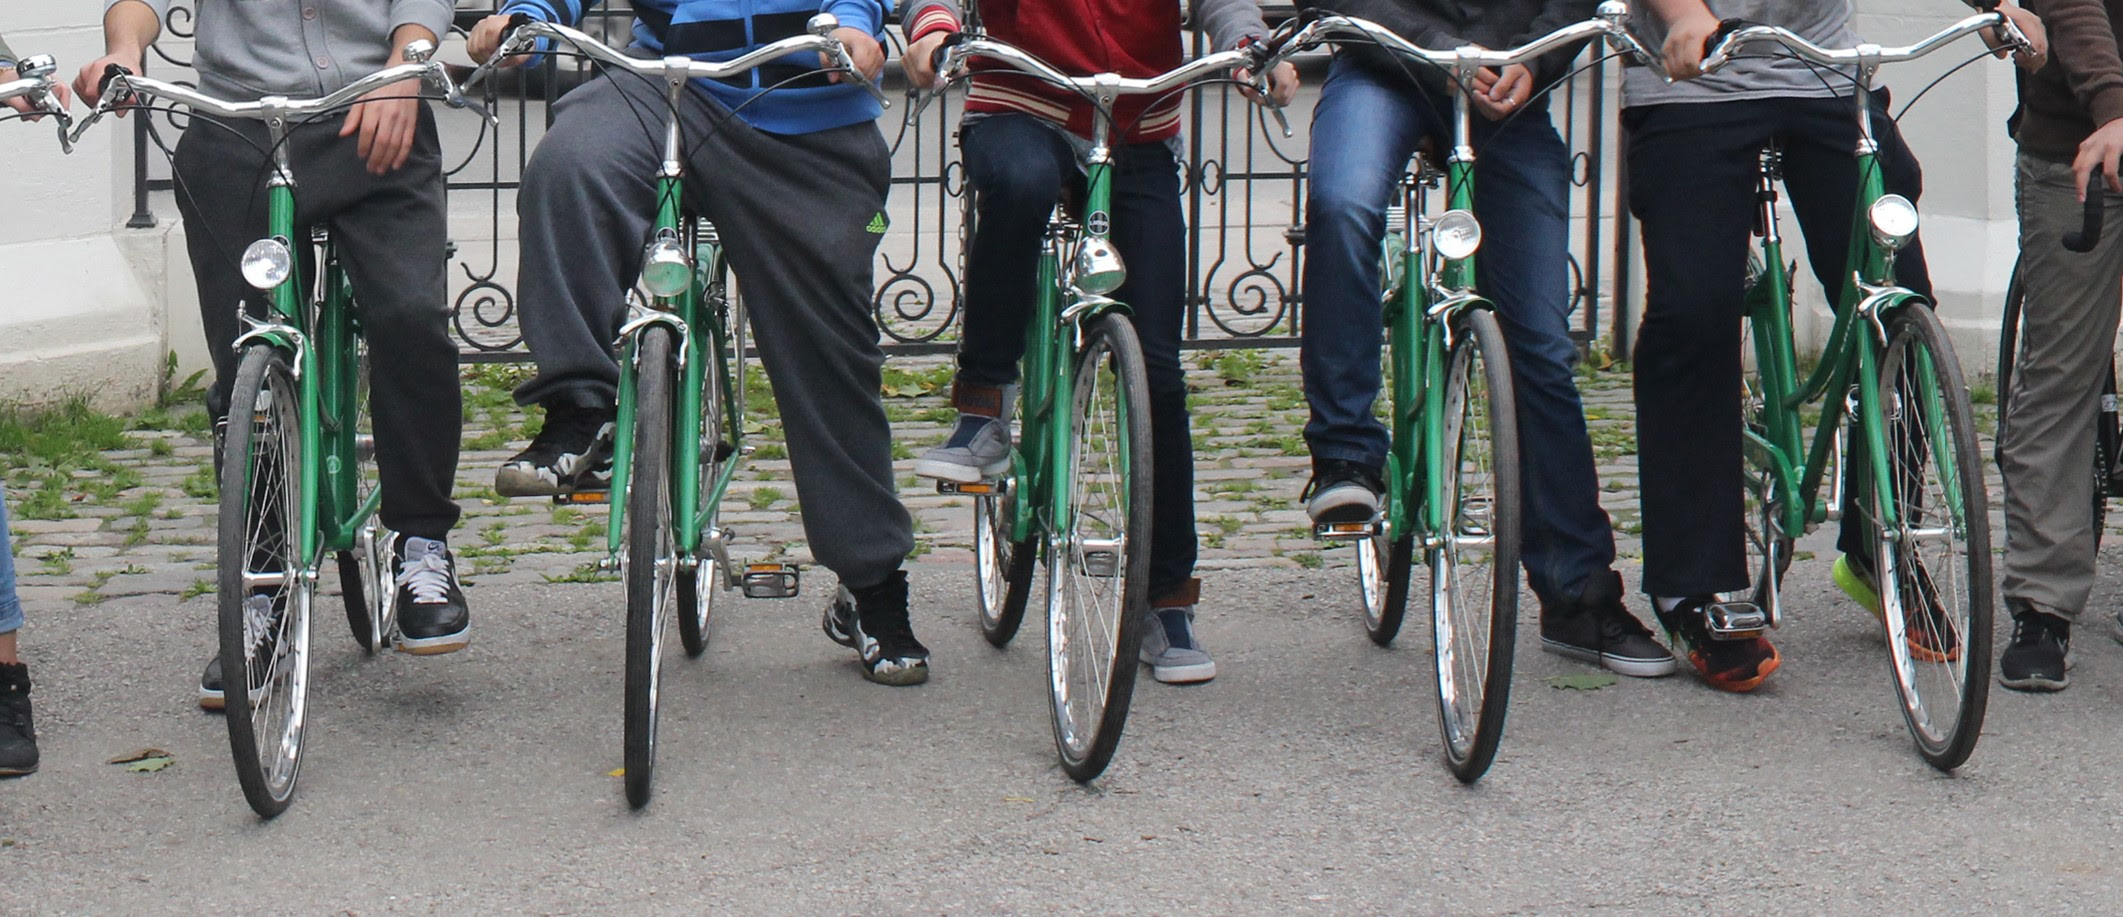 Youth on bikes with one foot on the ground